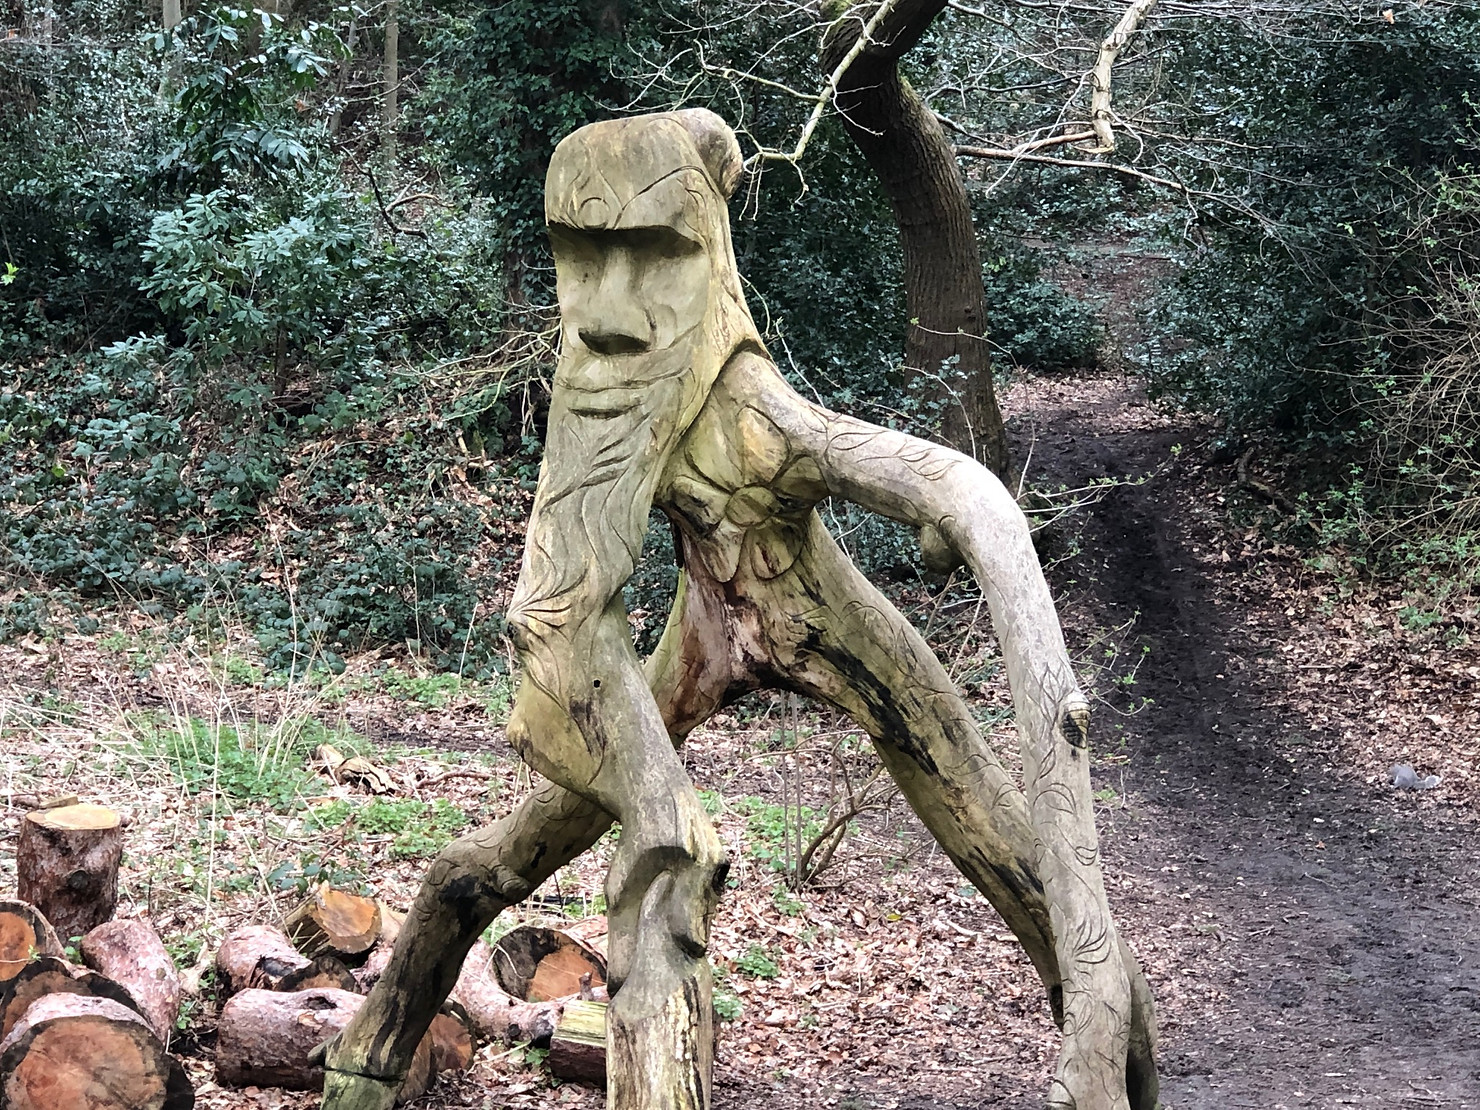 Green Man Wood Sculpture at Lily Hill Park, Bracknell